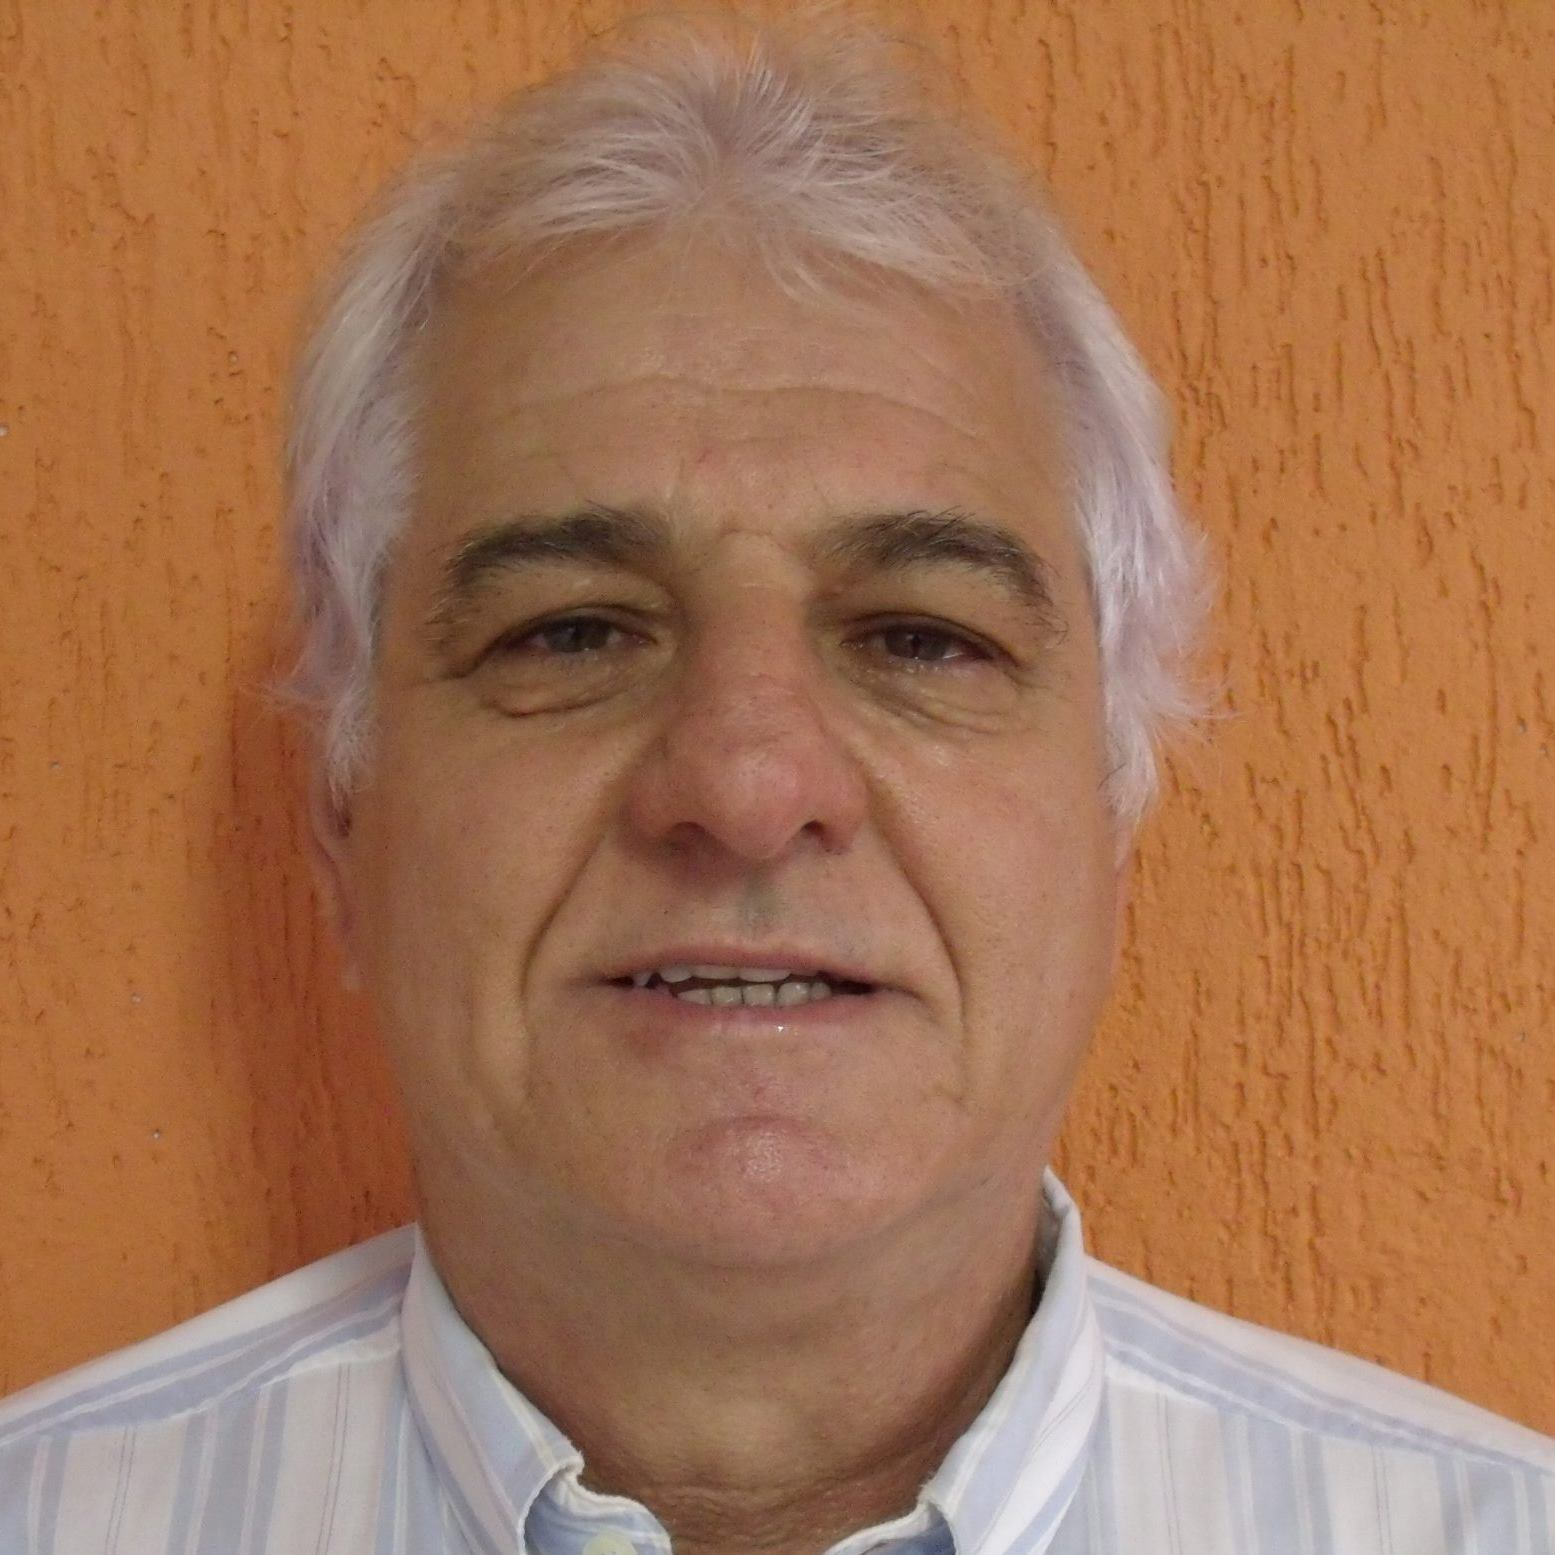 M. SC. PAULO SÉRGIO PETERLINI